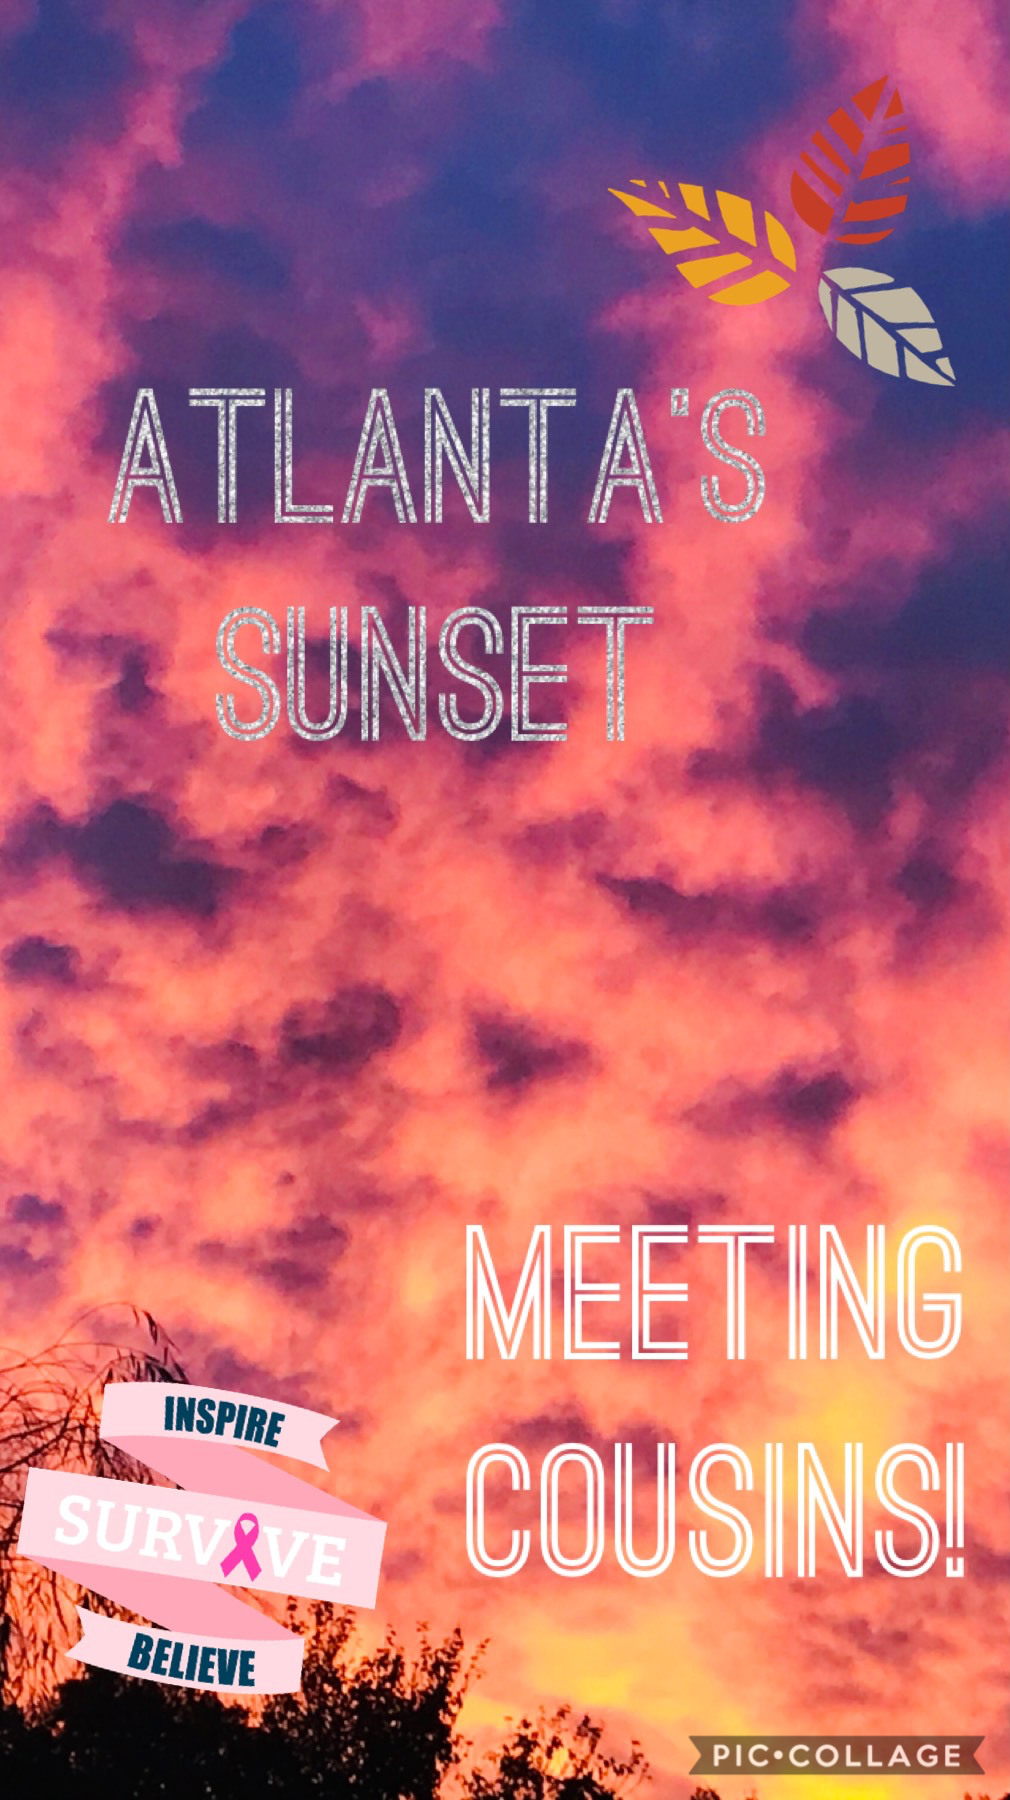 Atlanta's sunset!!